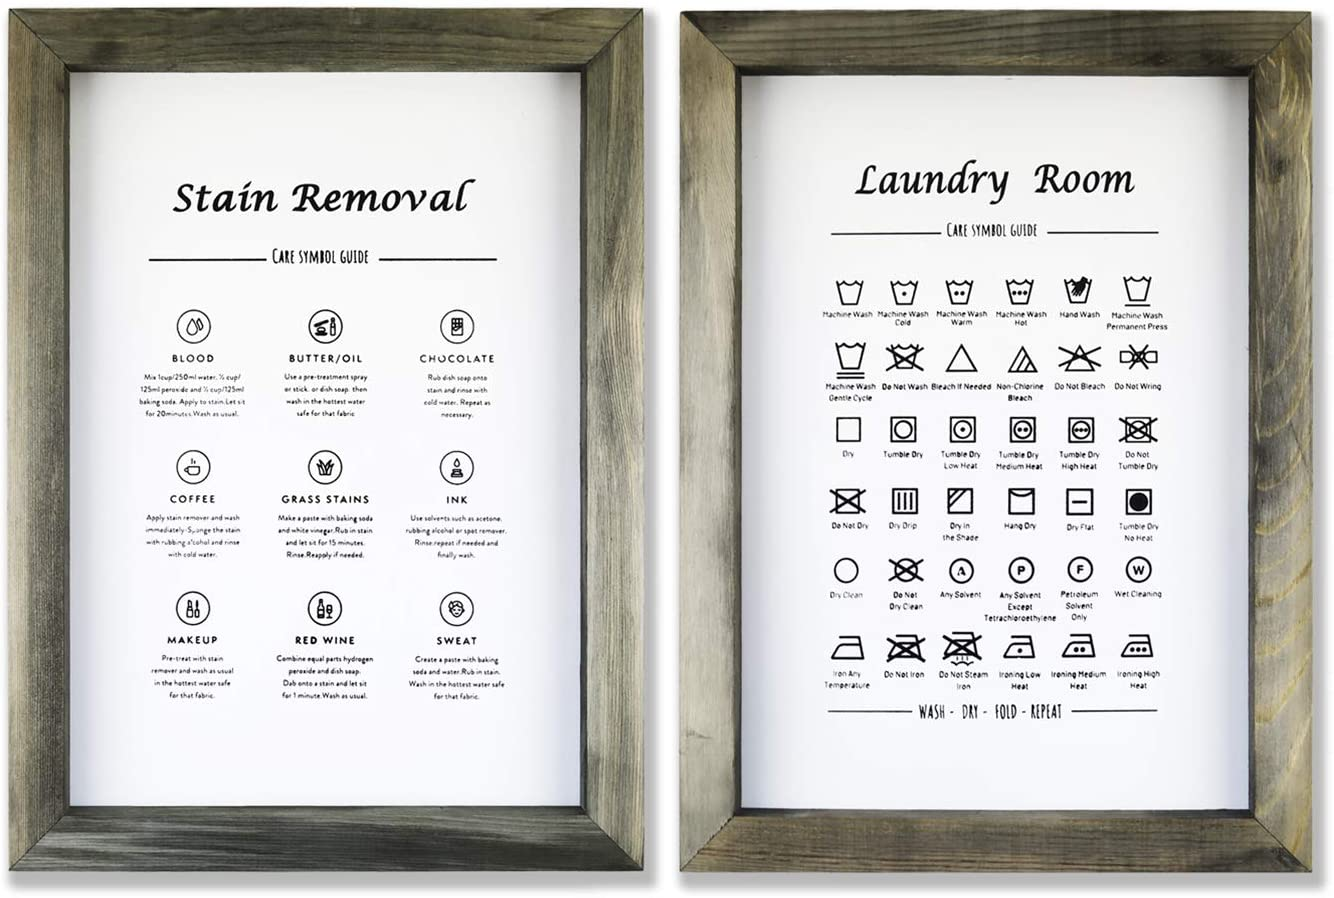 Kdesign Laundry Signs for Laundry Room Decor, 11 x 15 inch Vintage, Wooden Framed Laundry Room Sign x 2, Laundry Symbols Wall Art for Rustic Laundry Room Decor